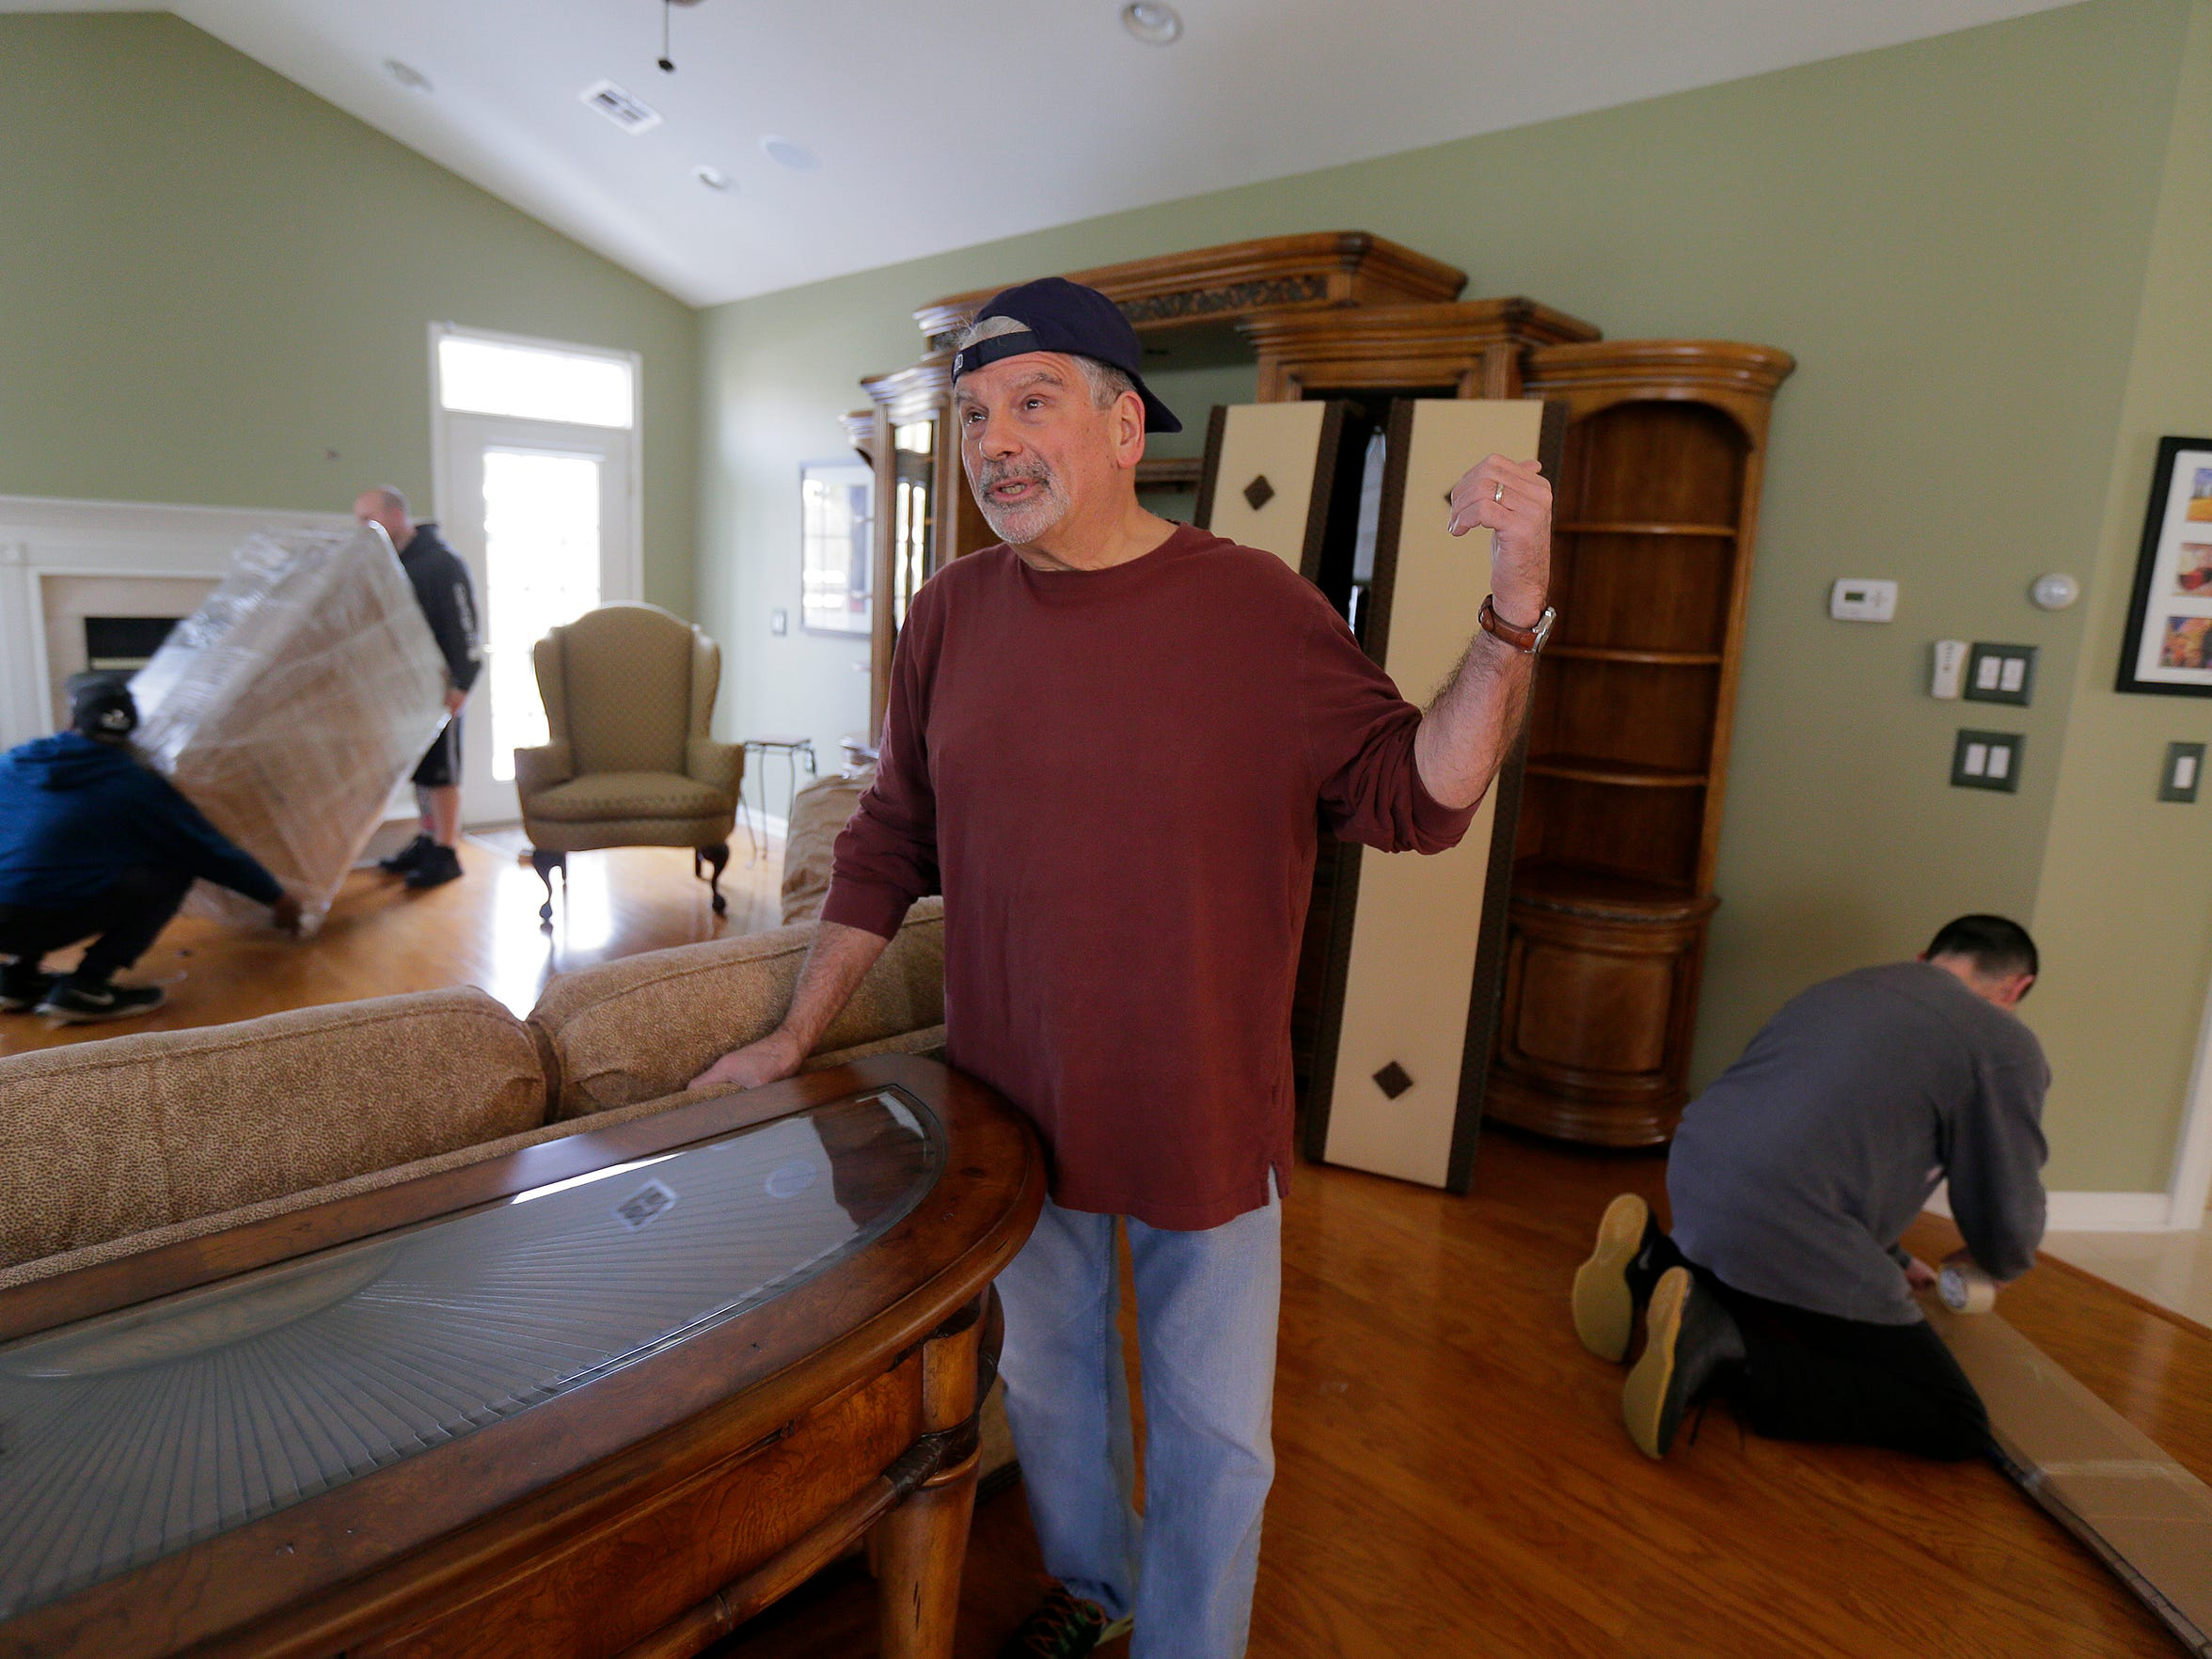 (pictured) Tom Gatti, the founder of the Senior Action Group in Lakewood and one of the most vocal figures in the opposition to township growth, and his wife, Ellen Gatti, move out of their Lakewood home after 12 years in Lakewood, NJ Monday, March 12, 2018.  Workers from Freehold Movers pack the contents of their home and load it onto a truck.